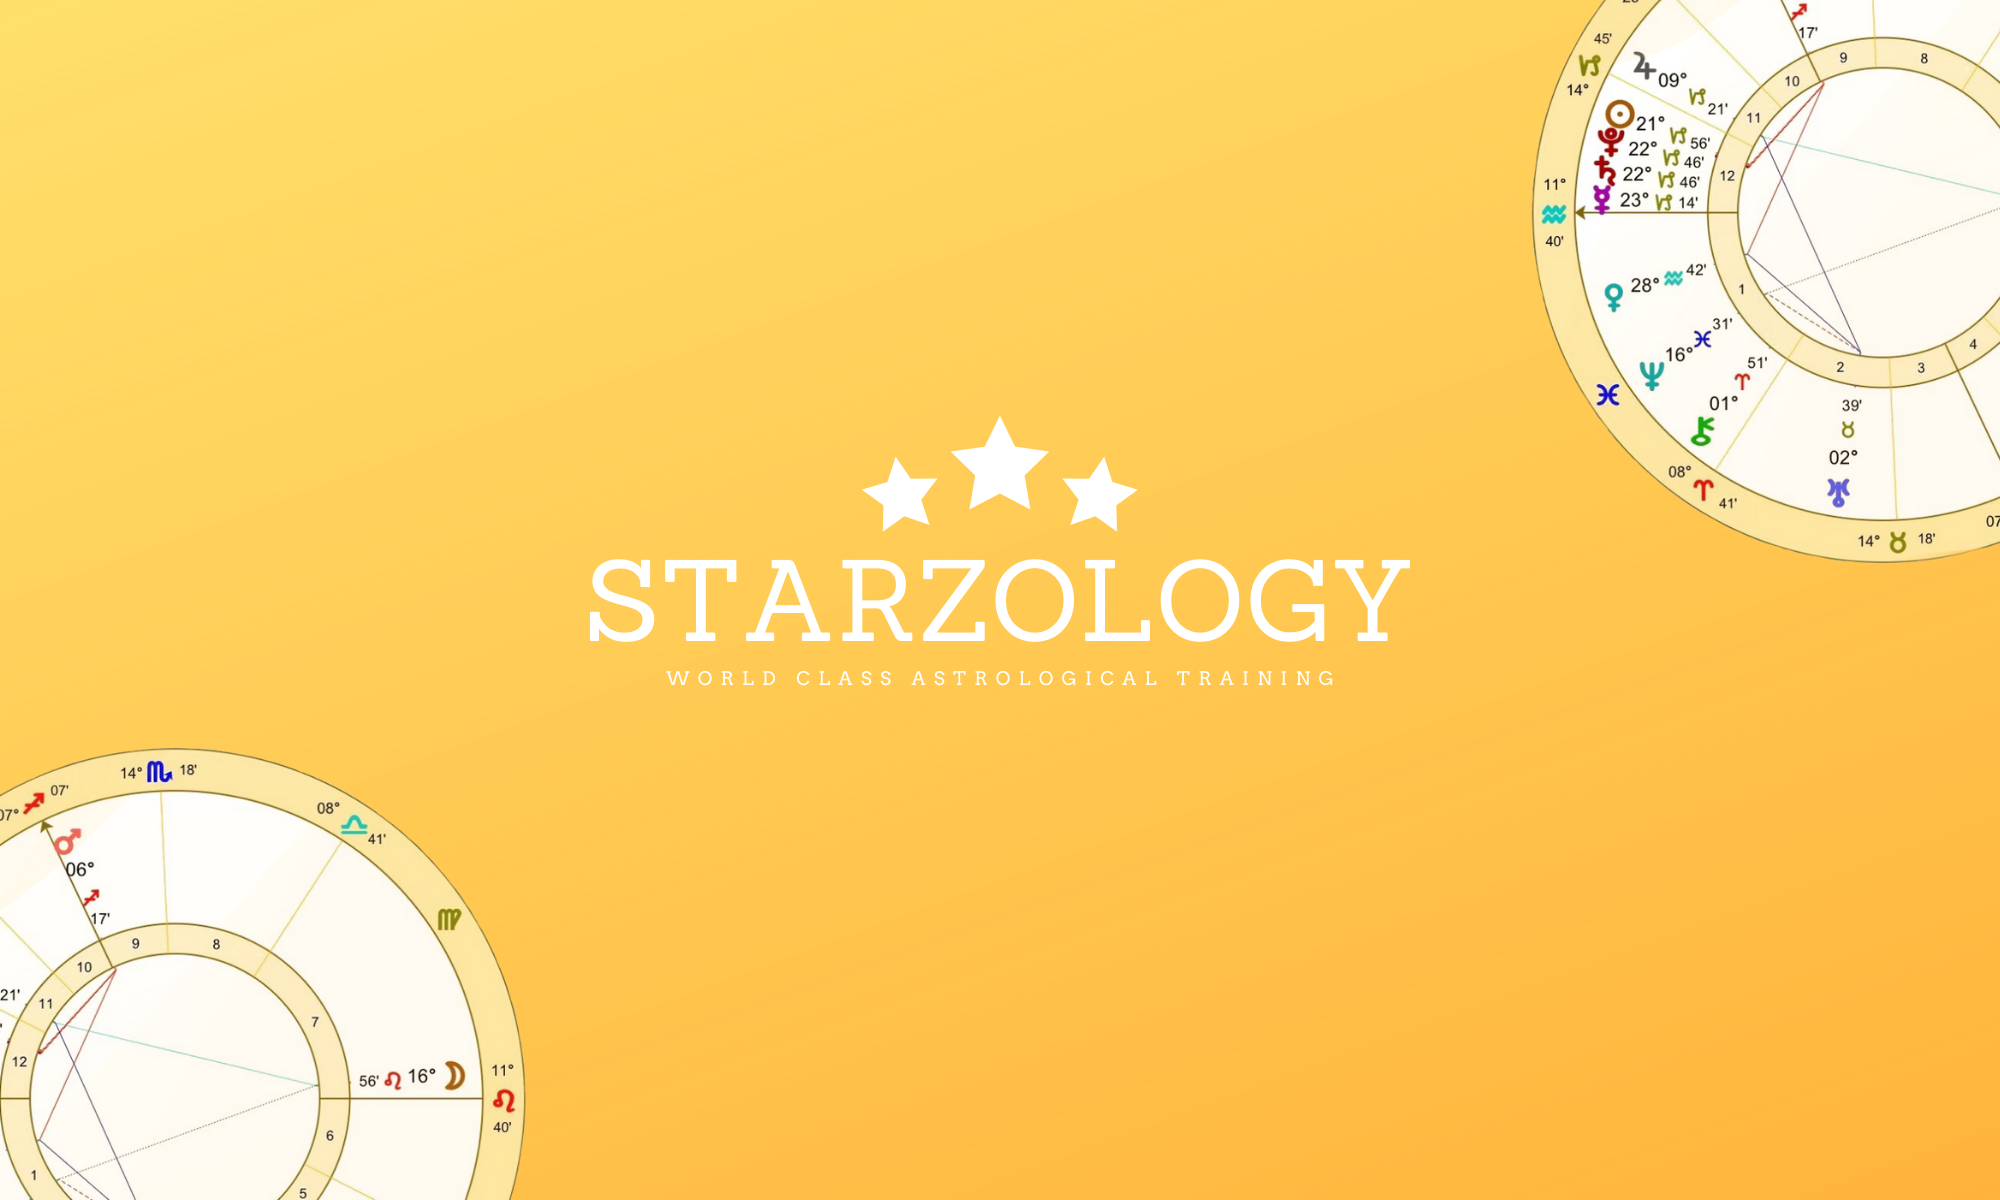 Starzology - World Class Astrological Training